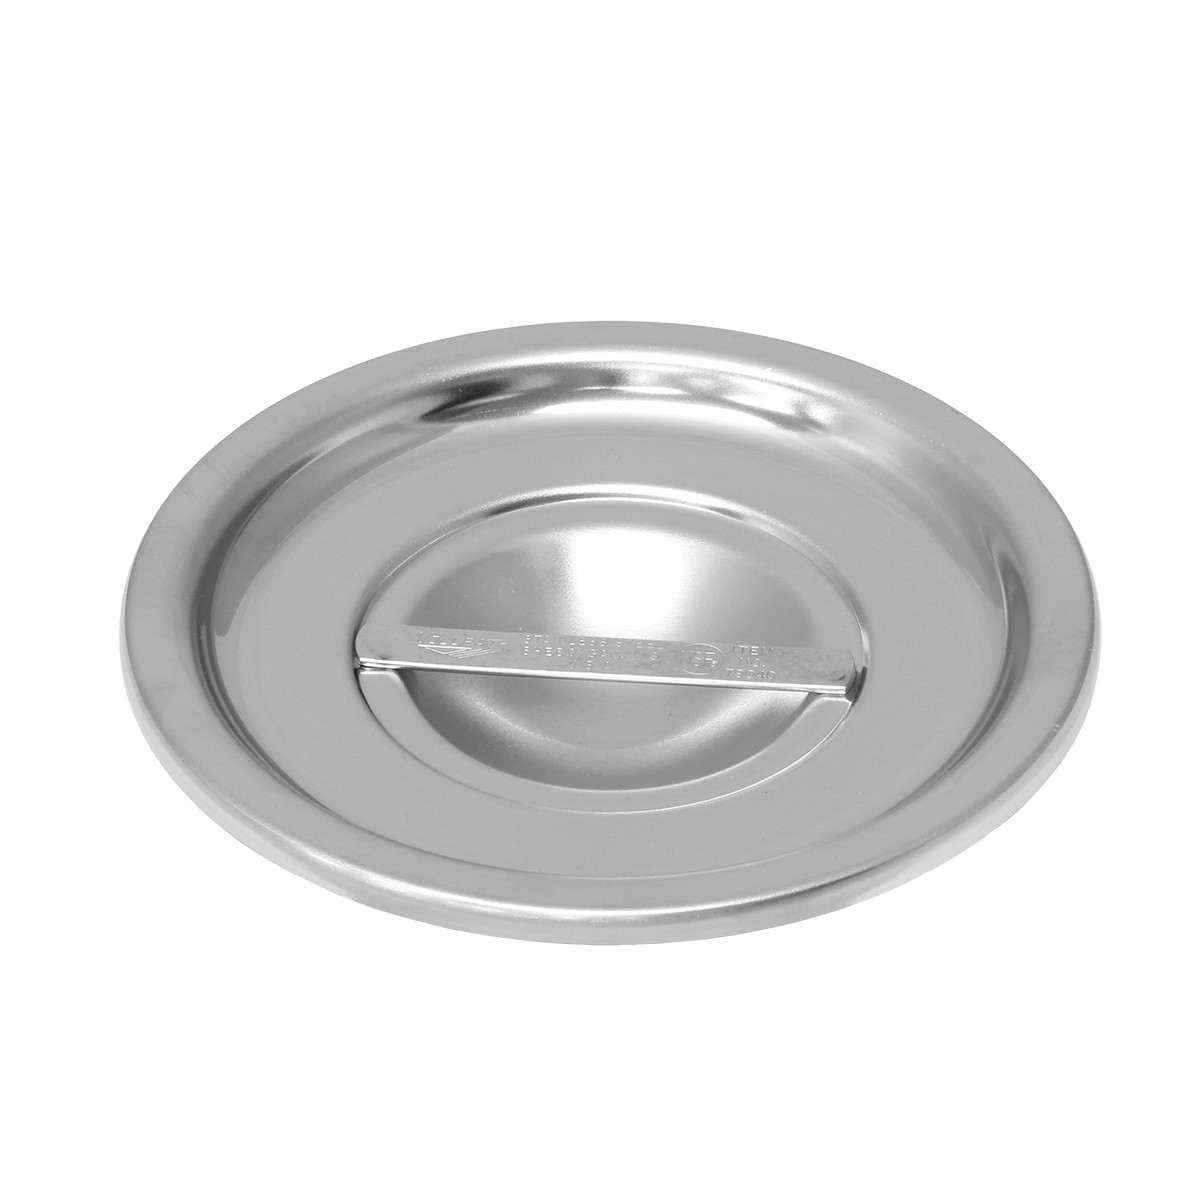 Stainless Steel Covers - 1.25 Qts